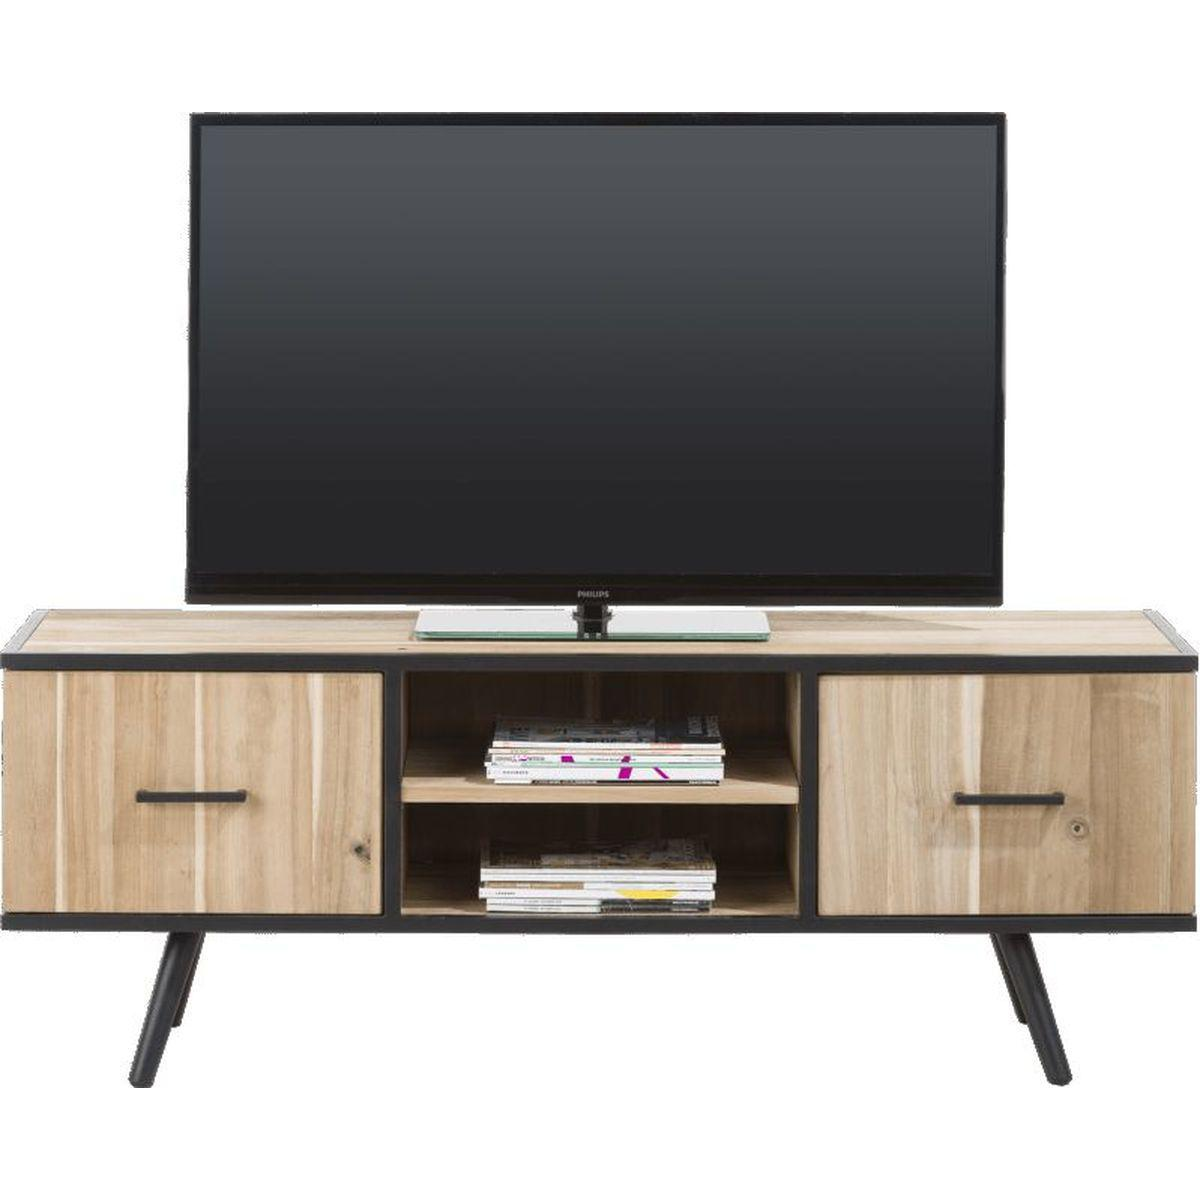 Meuble tv kinna xooon 190cm en bois tramwood abitare living for Meuble xooon occasion